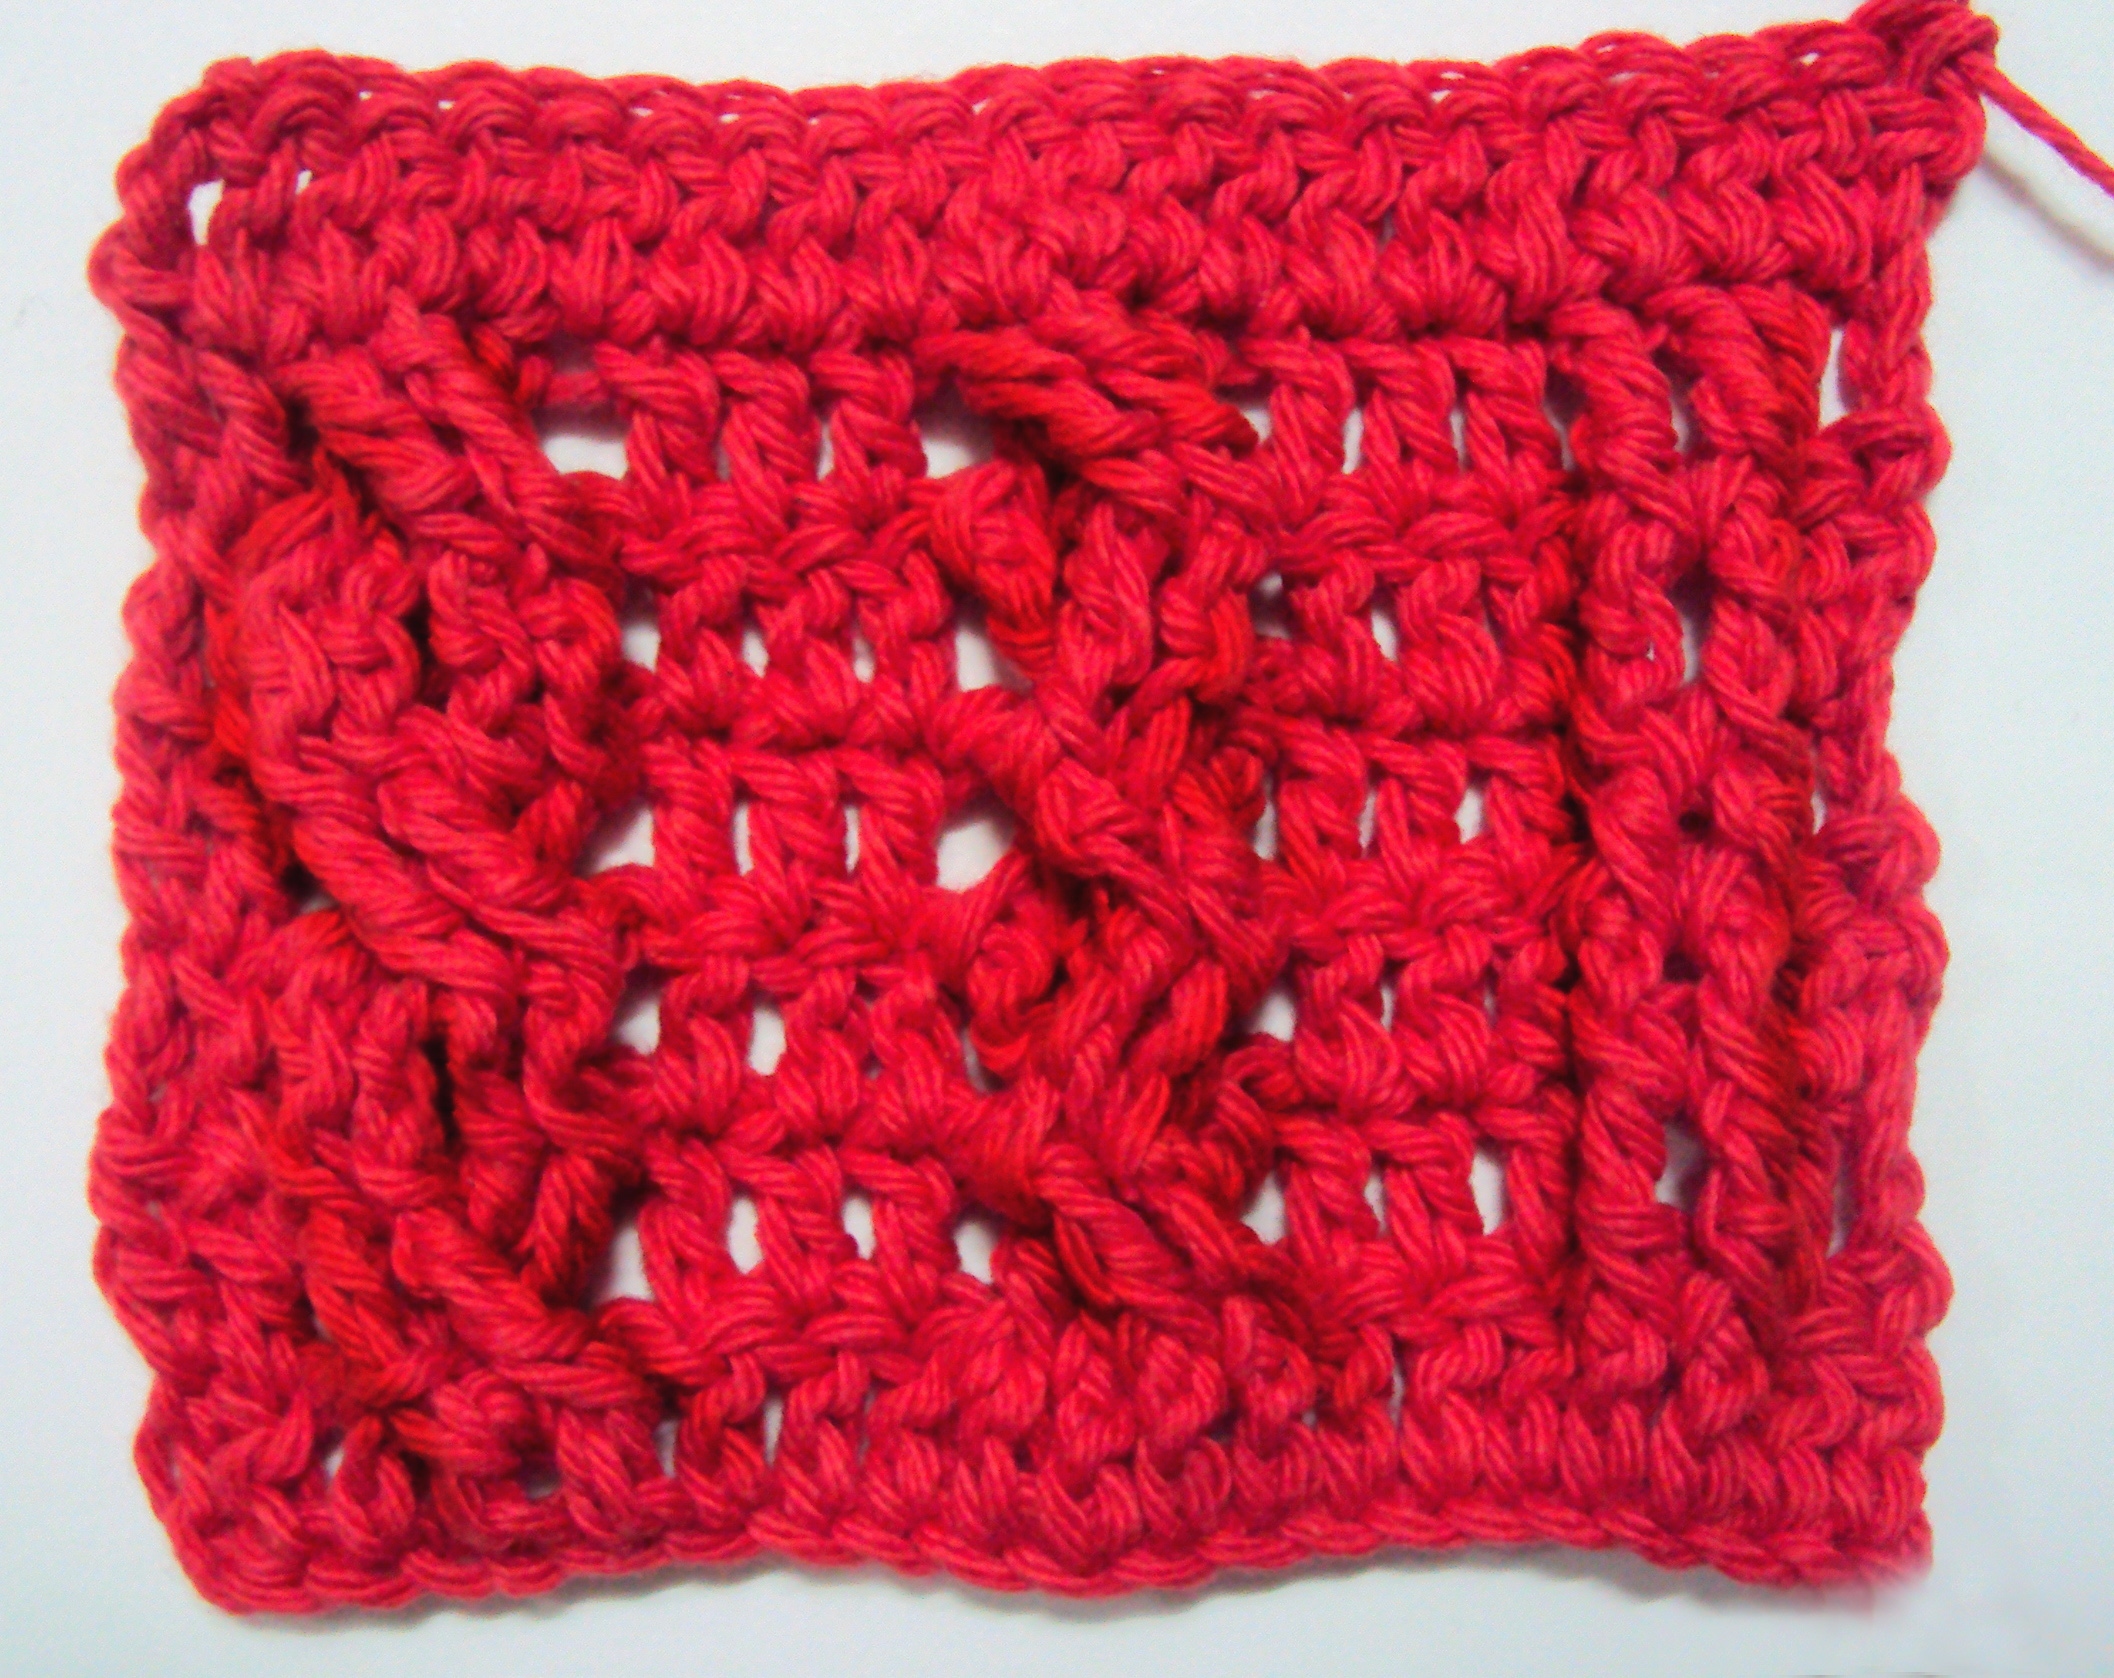 Crochet Stitches Cable : Crochet Stitches How to crochet: cable stitches